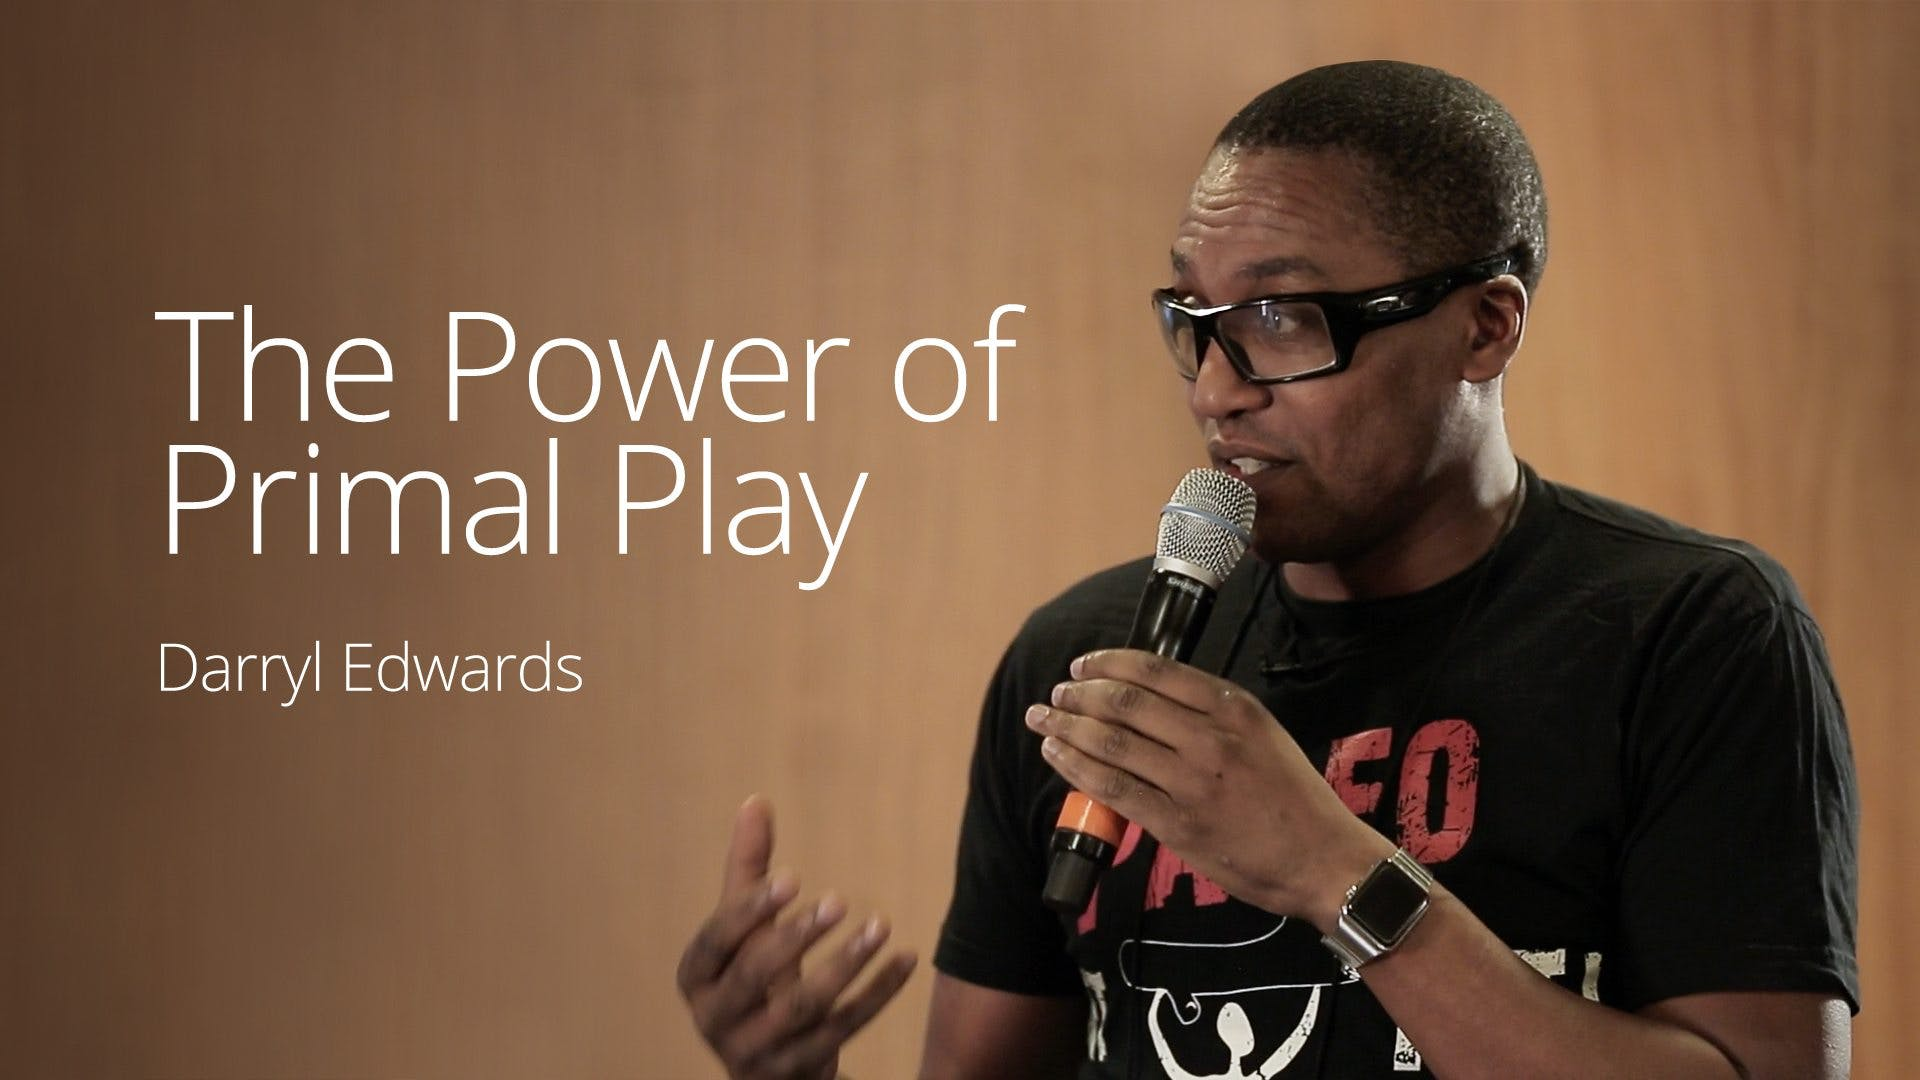 The Power of Primal Play – Darryl Edwards